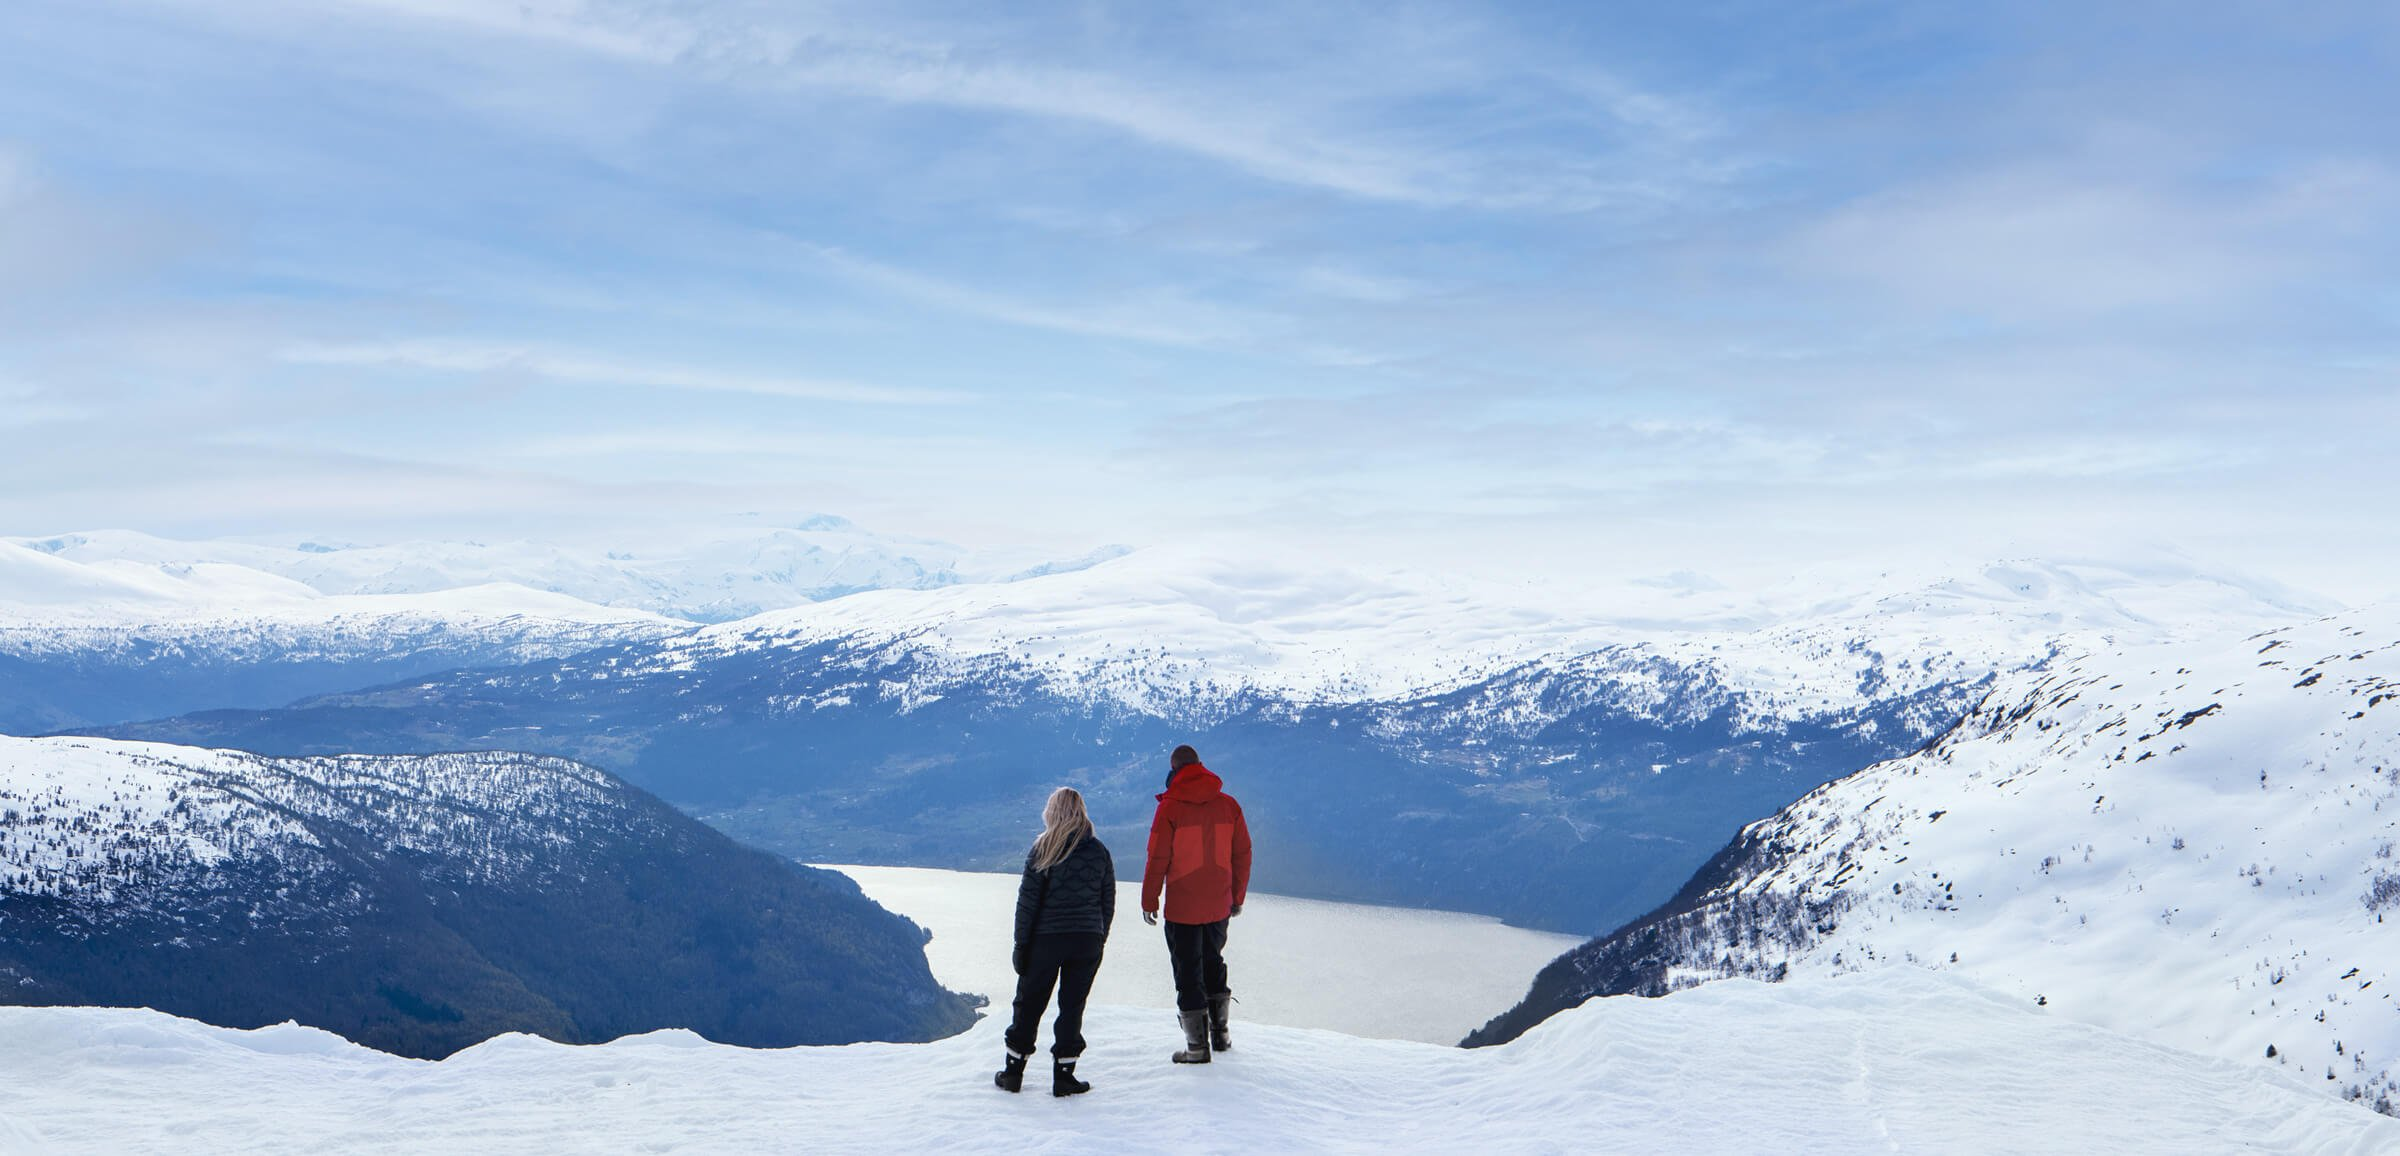 A couple looking at snowy mountains